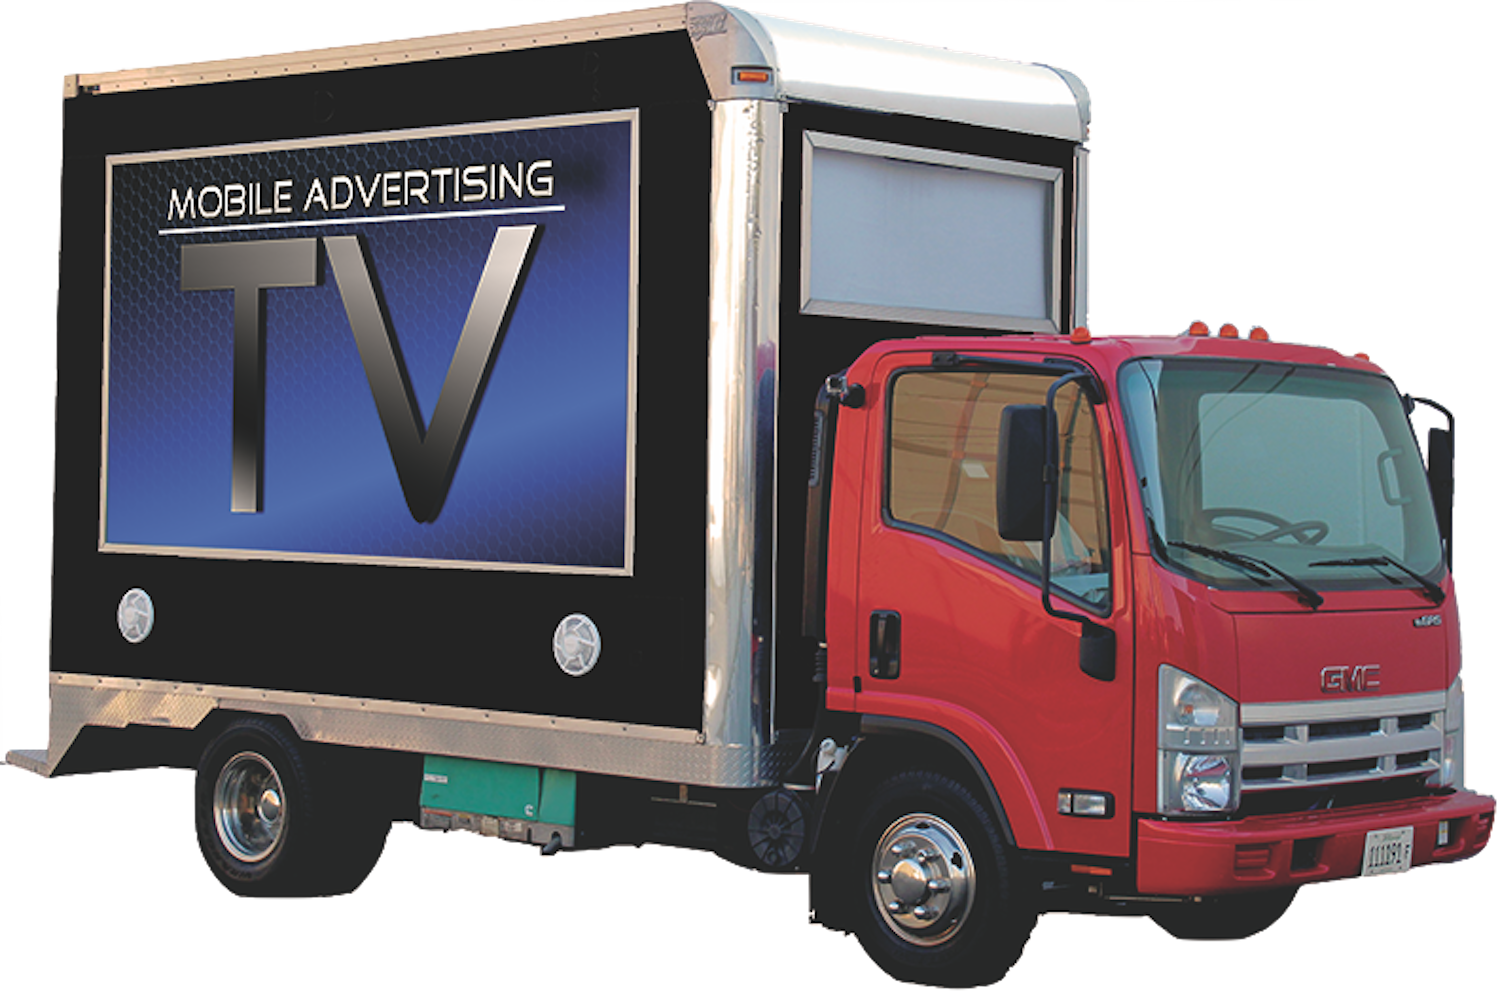 Mobile Advertising TV offers Mobile Billboard Advertising